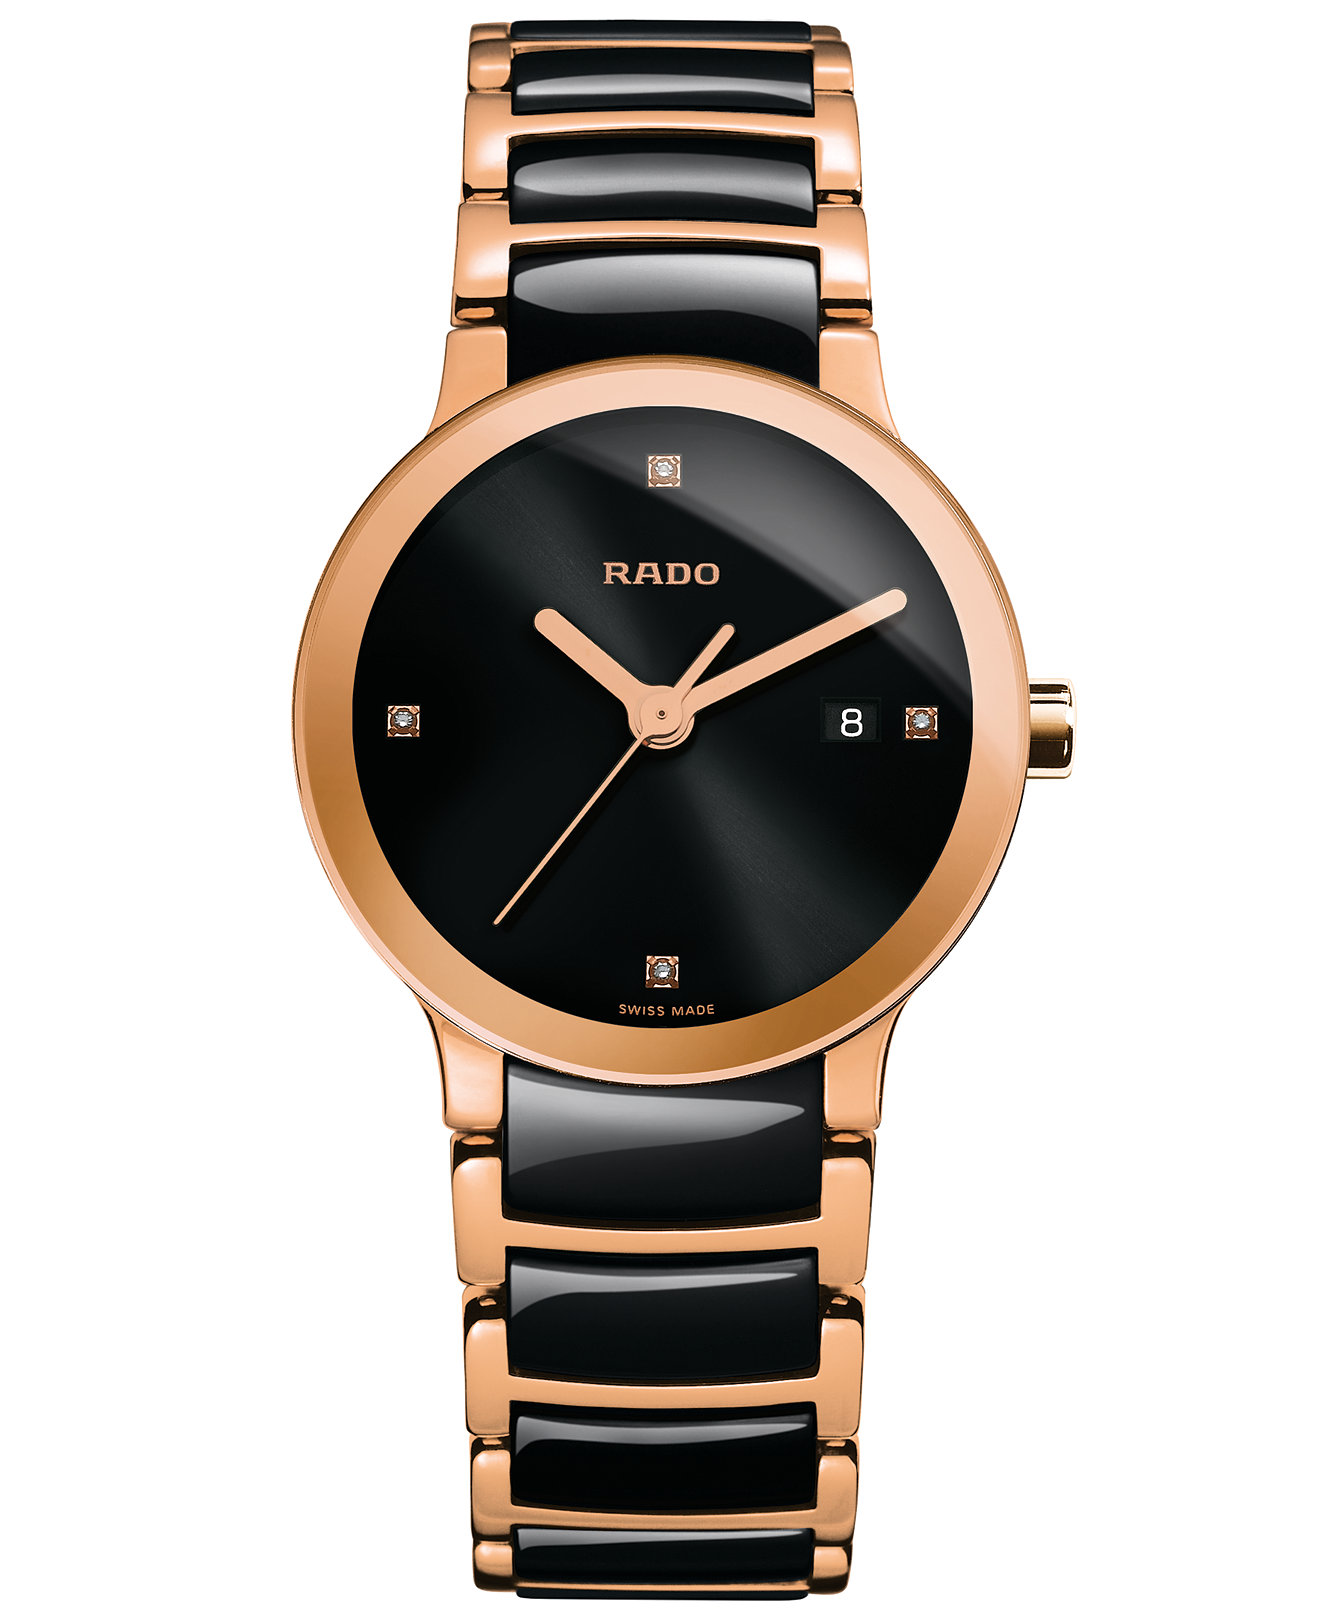 New Rado's Women's Swiss watches